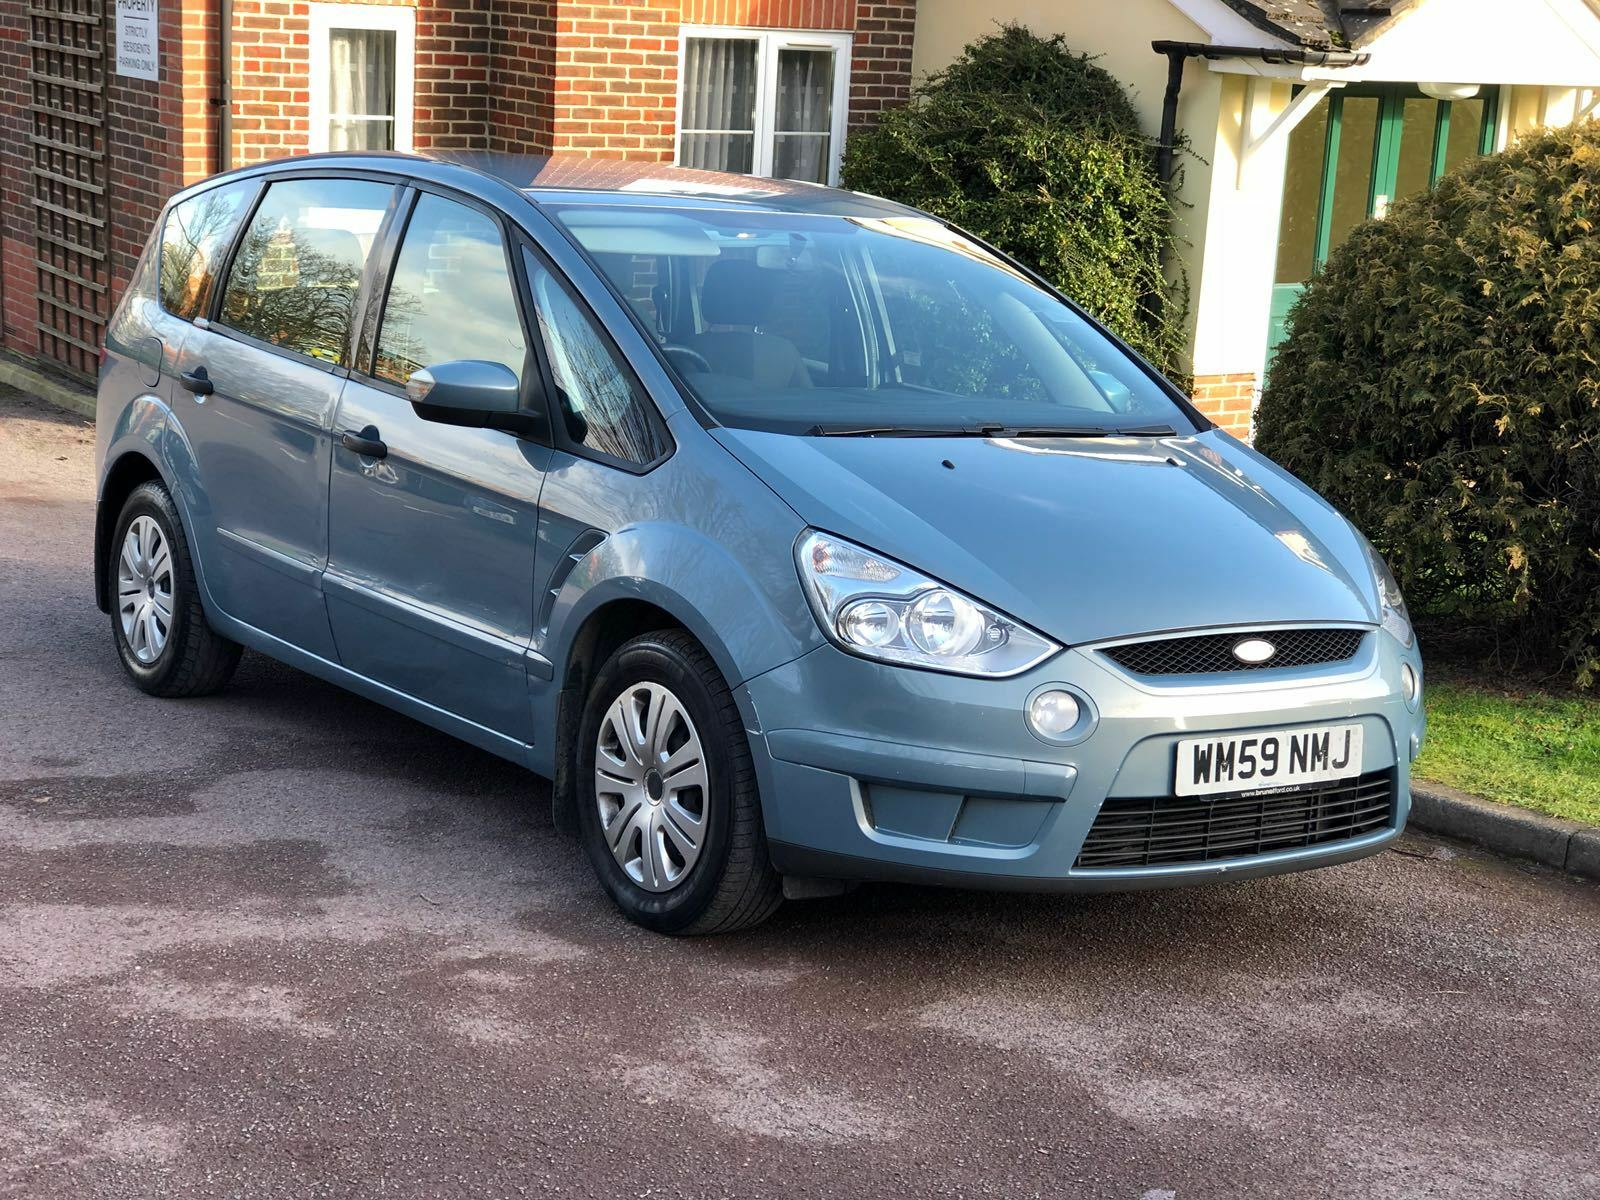 2010 59 ford s max edge tdci 143 7 seater mpv salvage damaged repairable 1 picclick uk. Black Bedroom Furniture Sets. Home Design Ideas